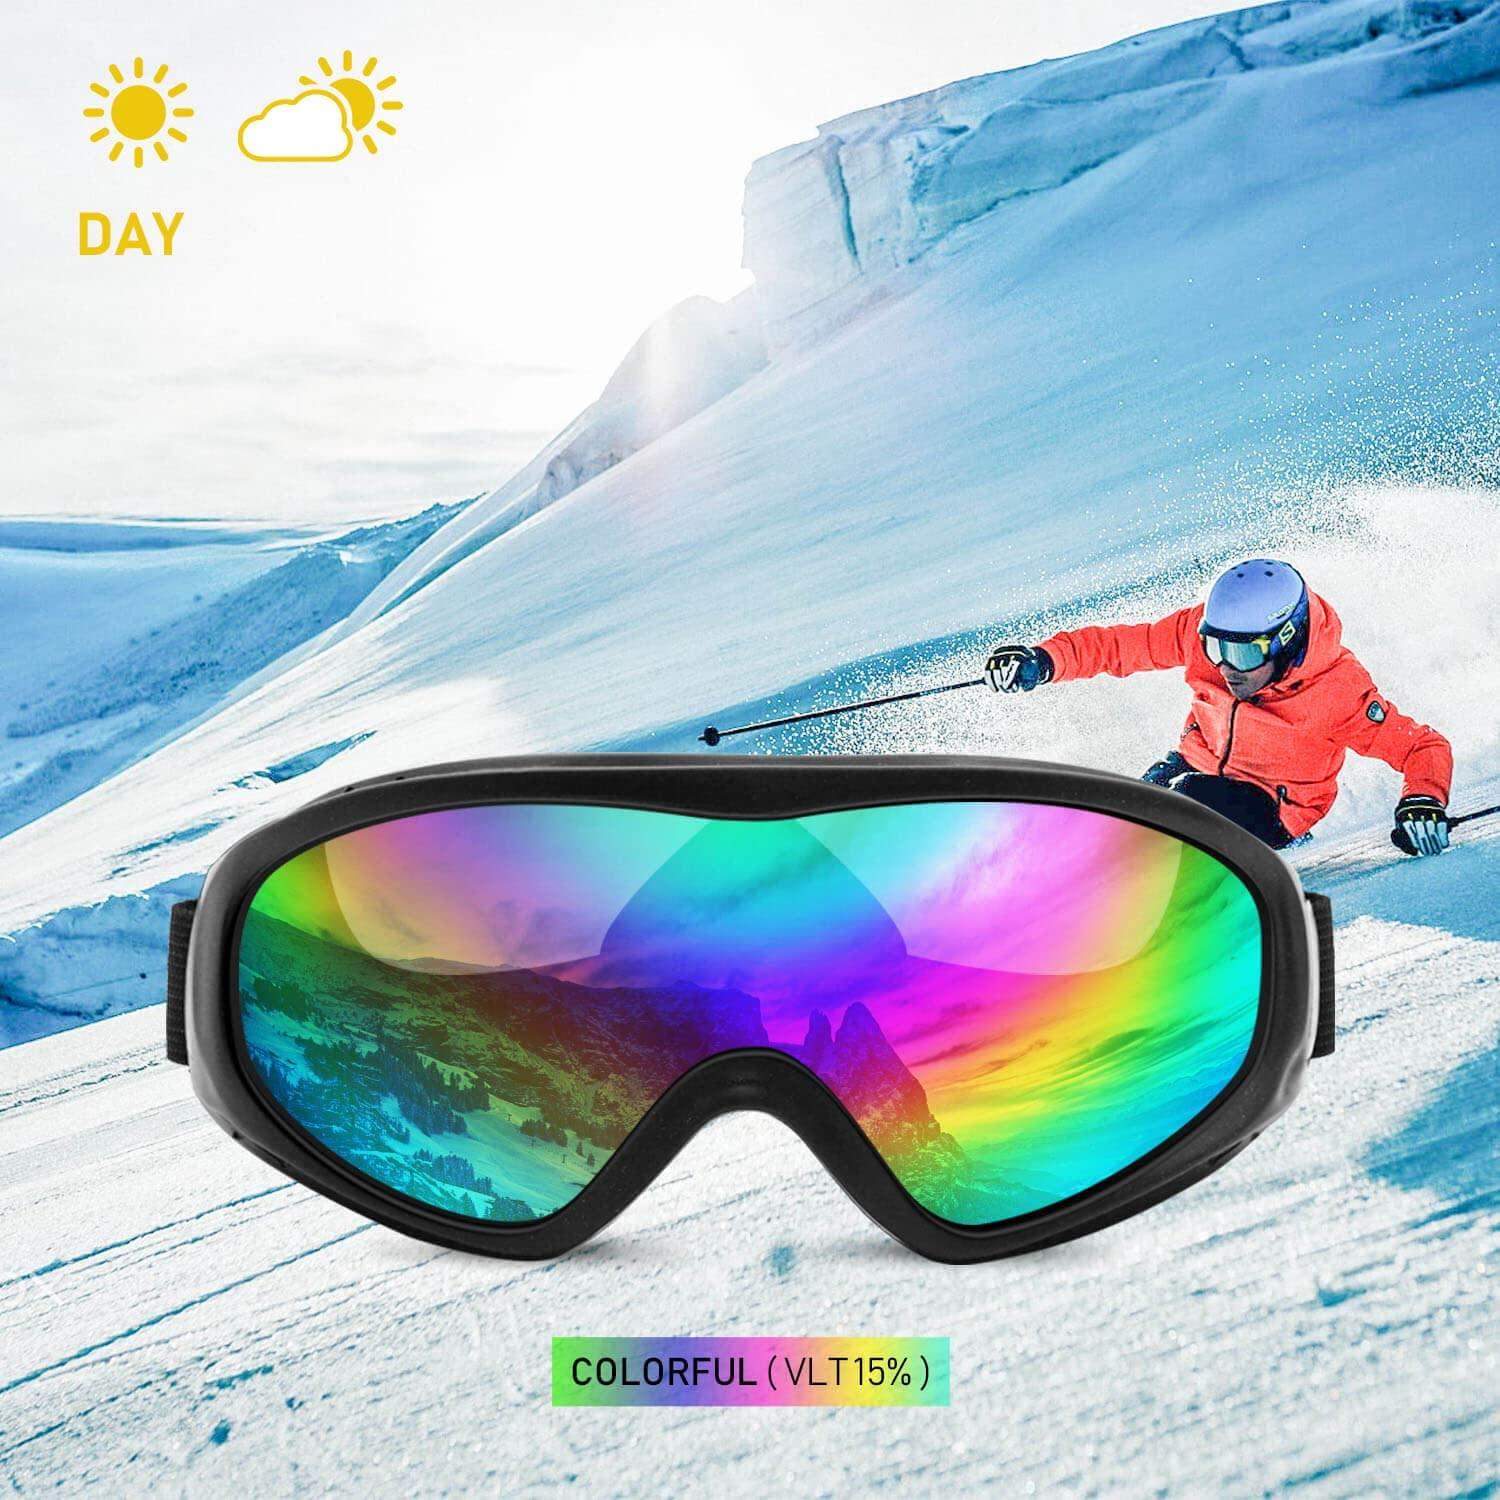 Loopip OTG Ski Snowboard Sports Goggles UV400 Protection Anti-Wind Dust-Proof Military Tactical Sunglasses for Men, Women Youth Pack of 4